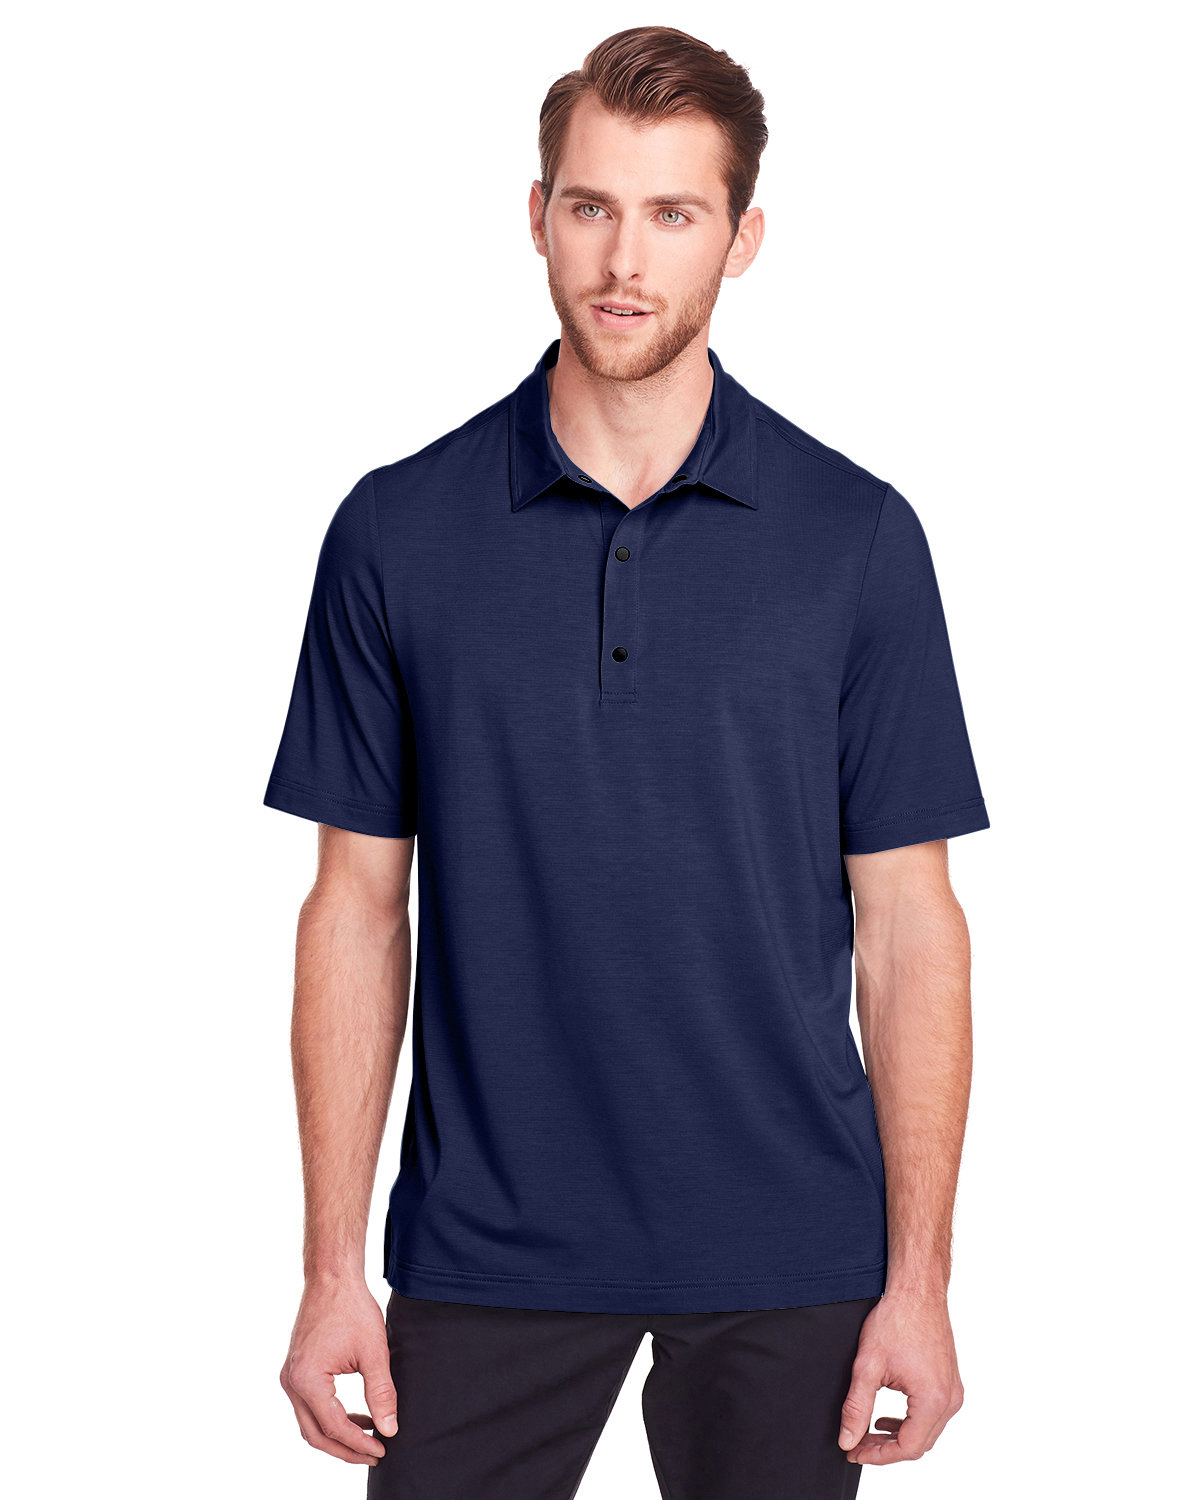 North End Men's Jaq Snap-Up Stretch Performance Polo CLASSIC NAVY